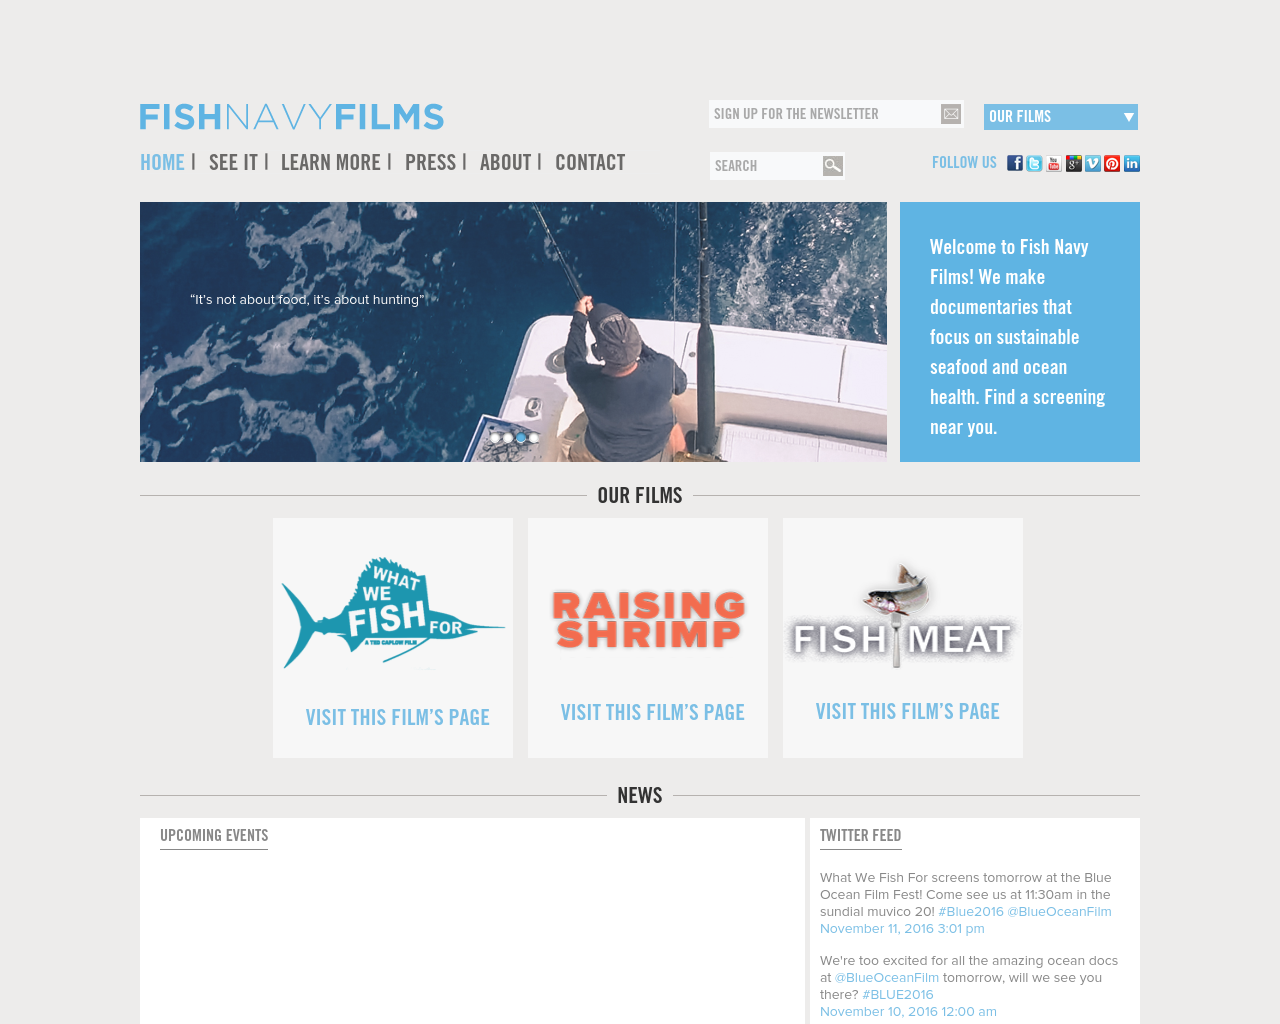 FISH-NAVY-Advertising-Reviews-Pricing